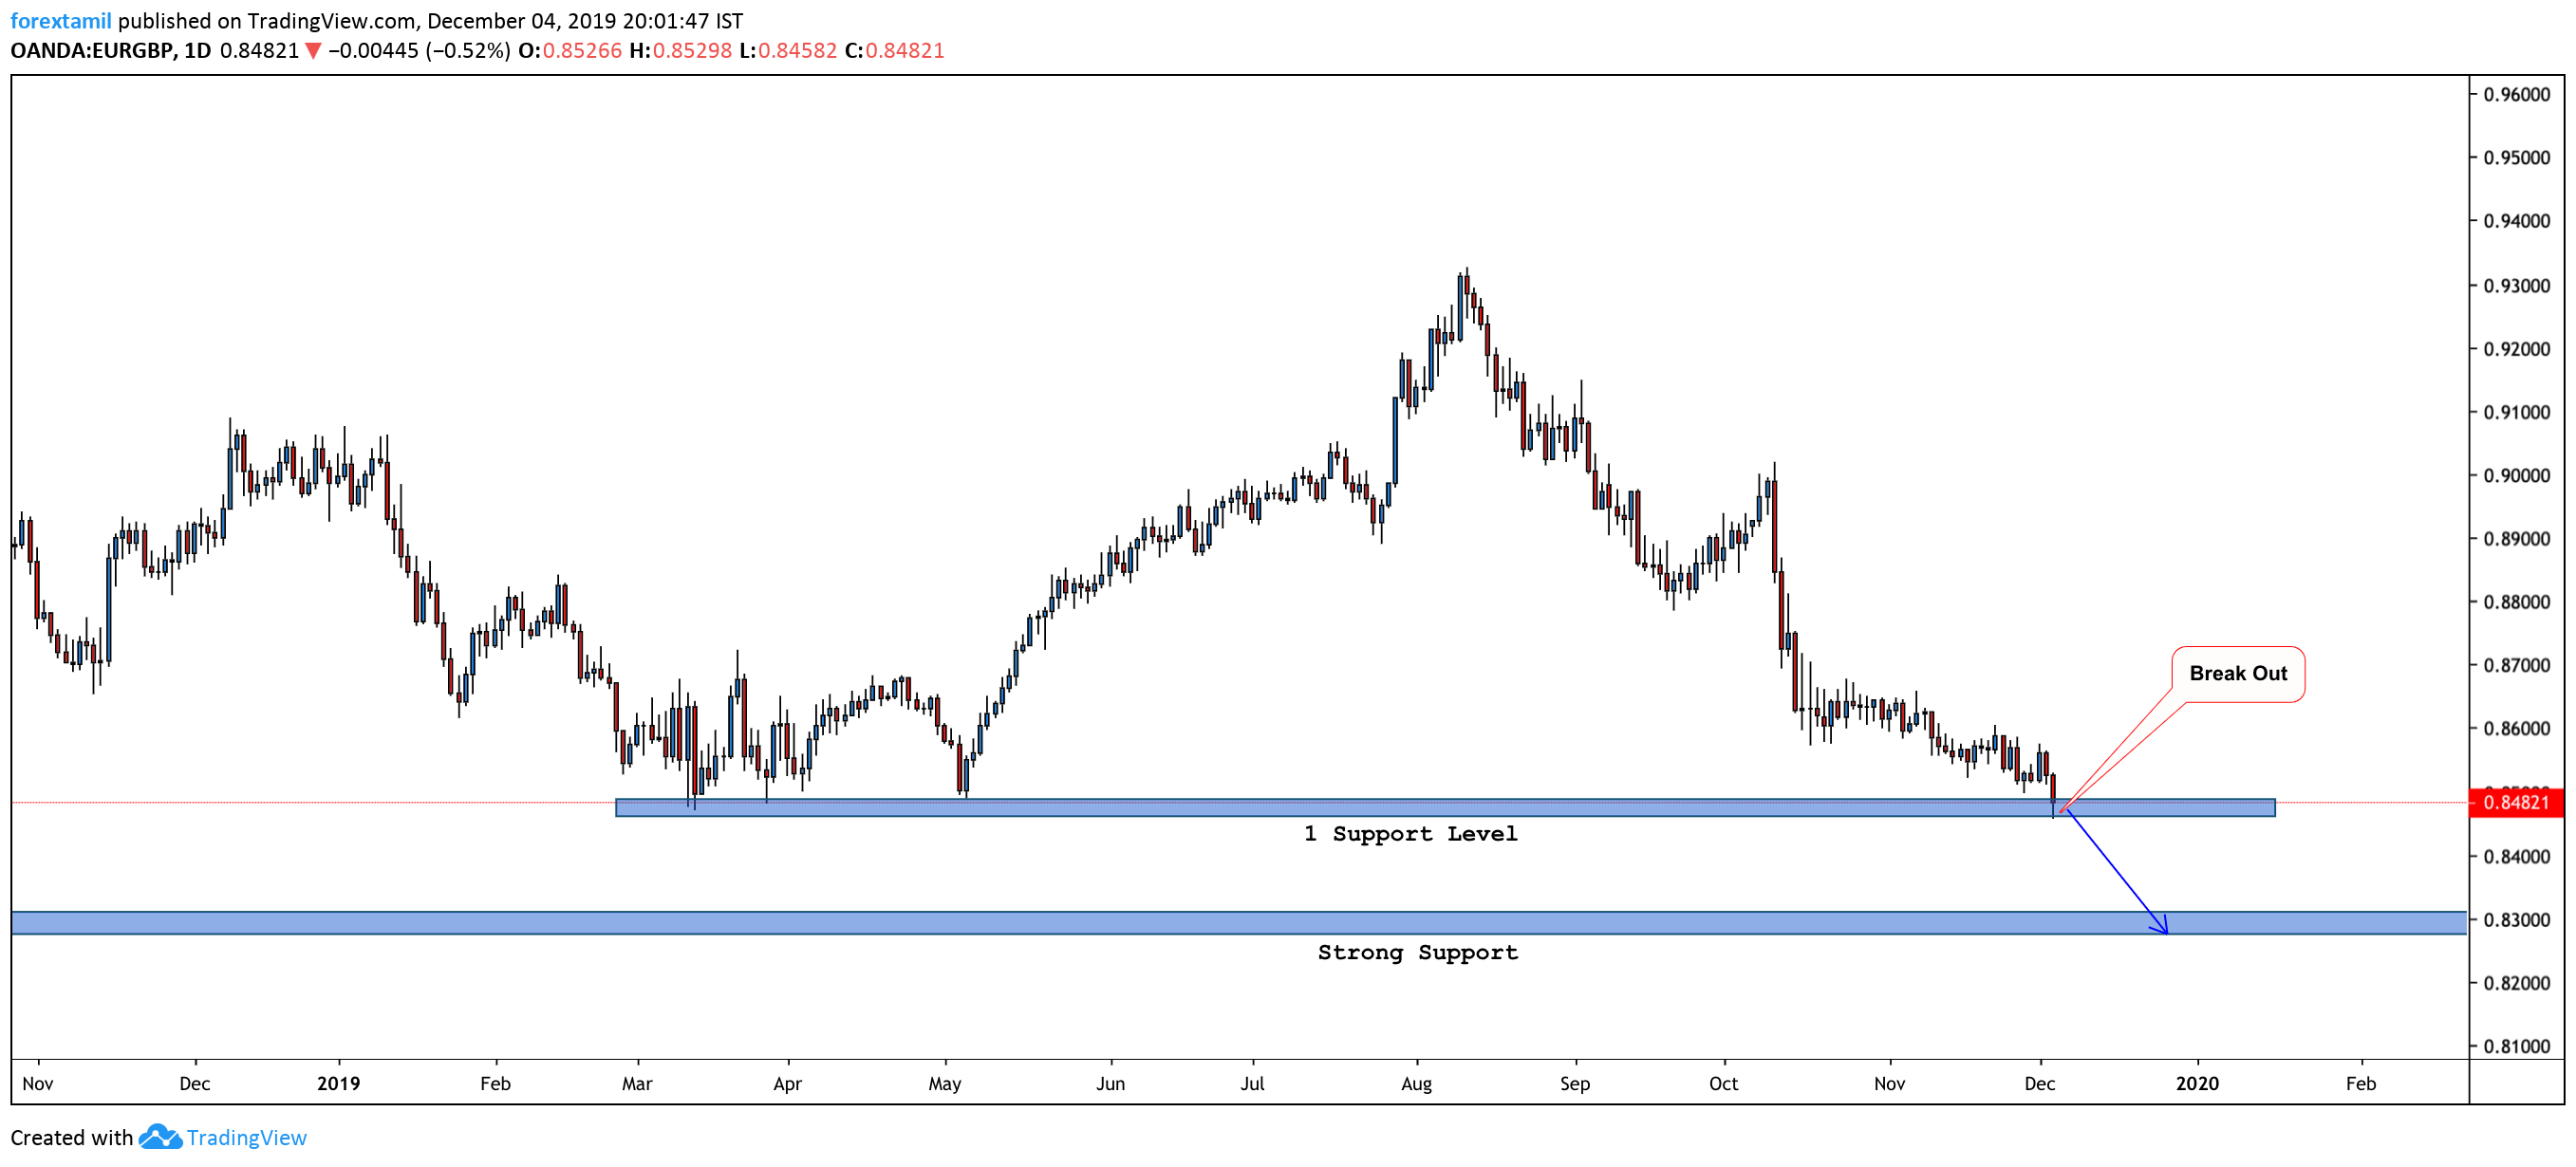 EUR/GBP drops to 2019 lows around 0.8470